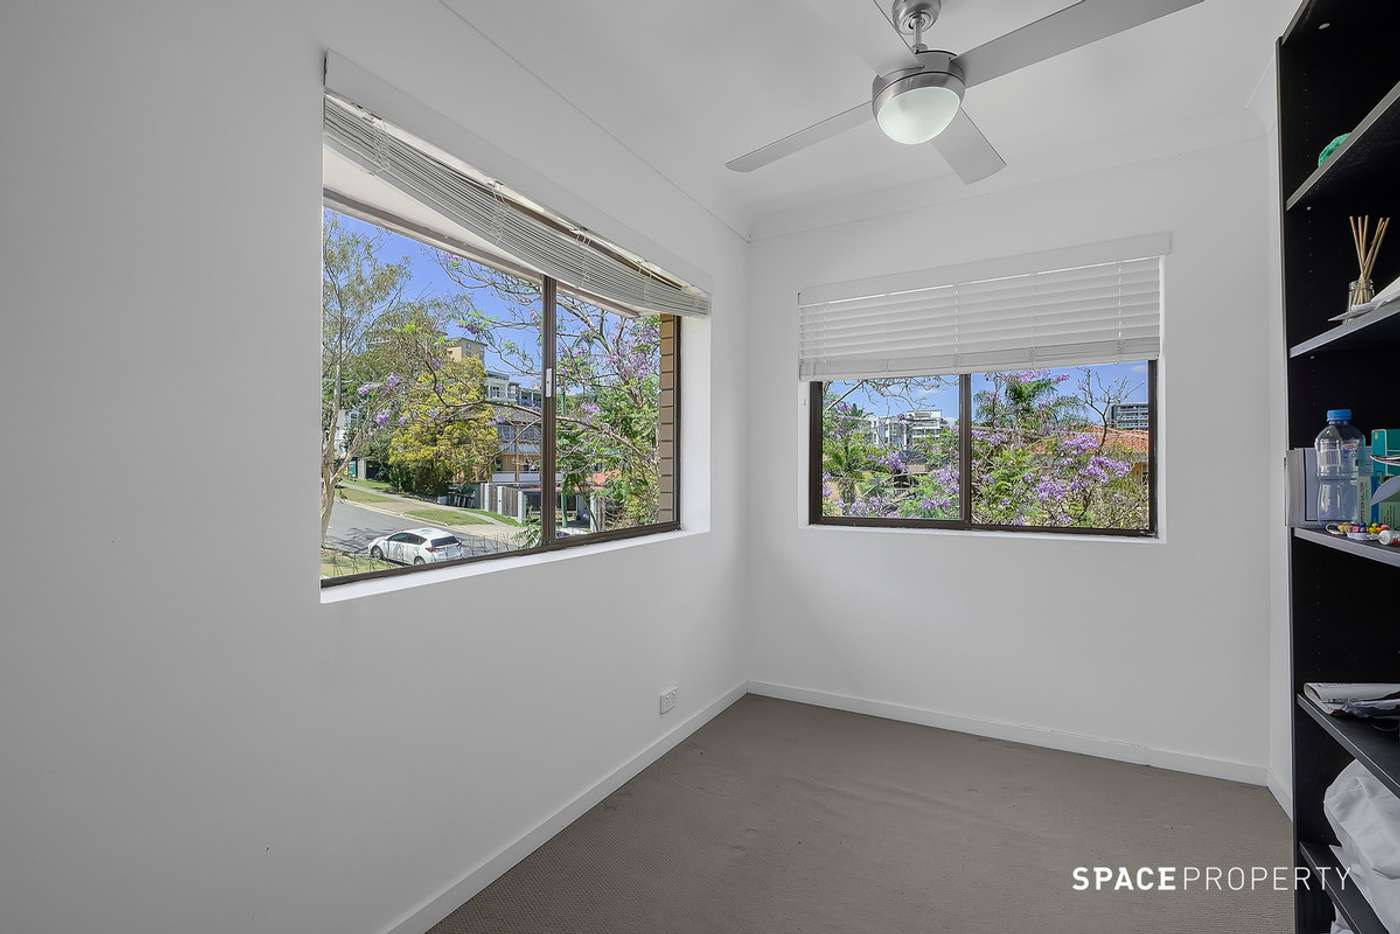 Fifth view of Homely apartment listing, 6/17 Kingsford Street, Auchenflower QLD 4066